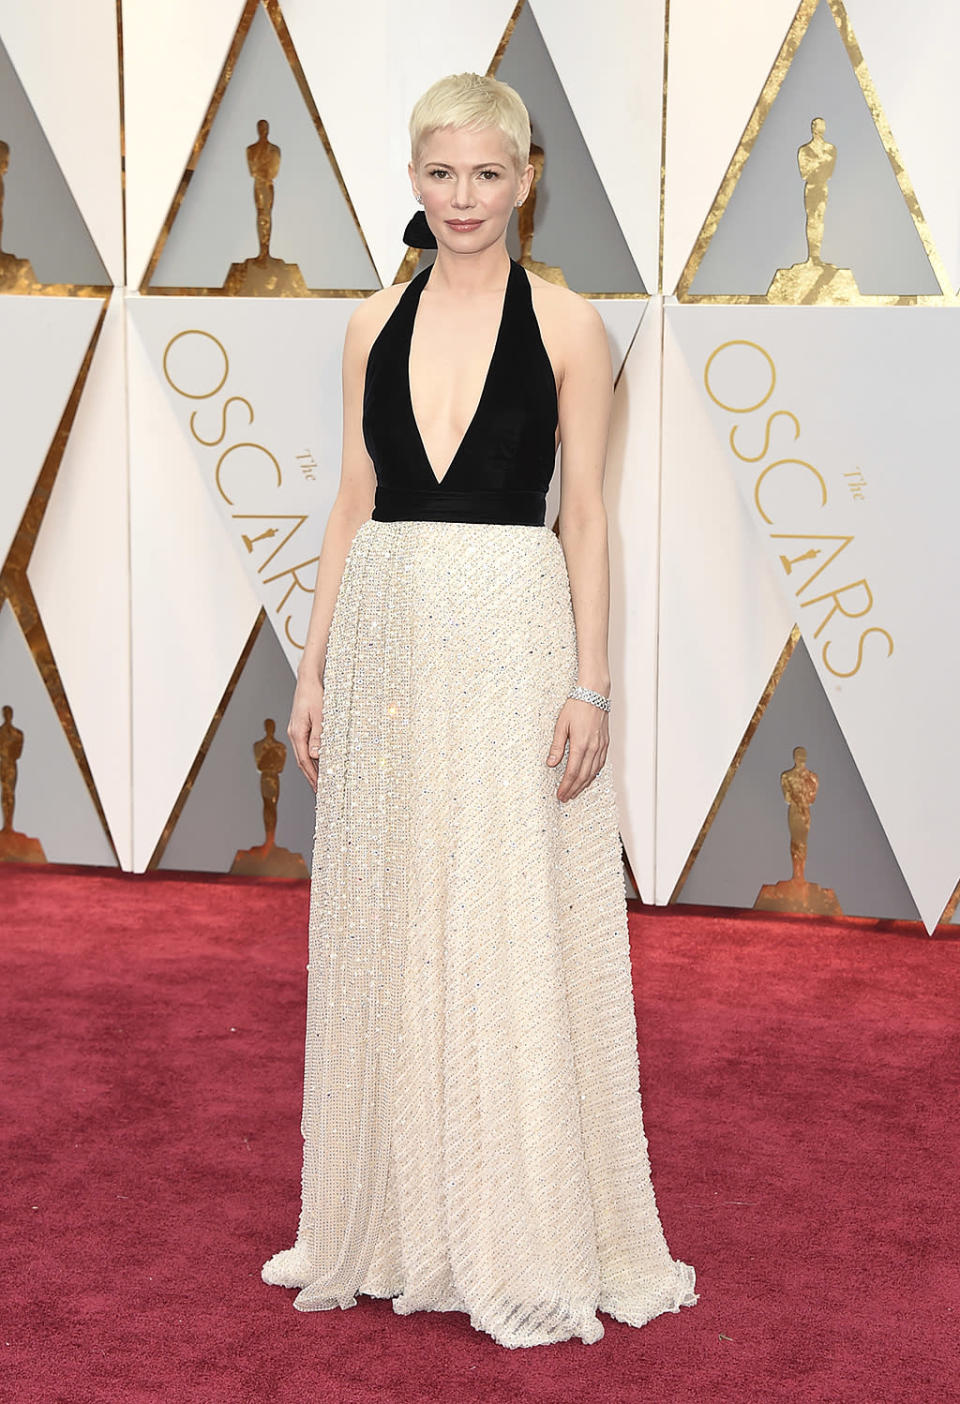 <p>Michelle Williams arrives at the Oscars on Feb. 26, 2017, at the Dolby Theatre in Los Angeles. (Photo by Jordan Strauss/Invision/AP) </p>